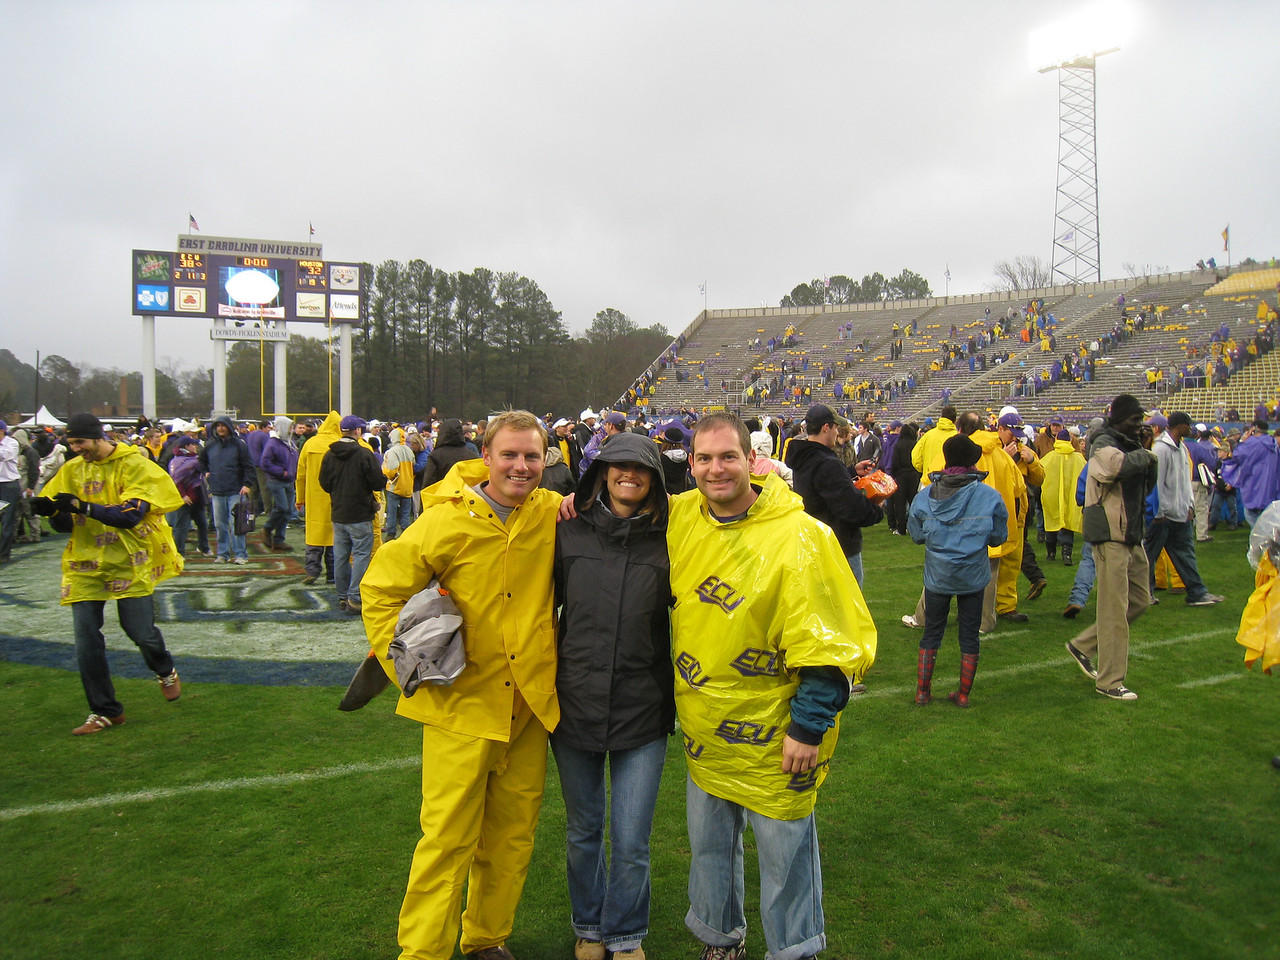 12/5/2009 - Conference USA Championship Game - on the field after the game - JG Ferguson, Stephanie Eason, Jon Deutsch